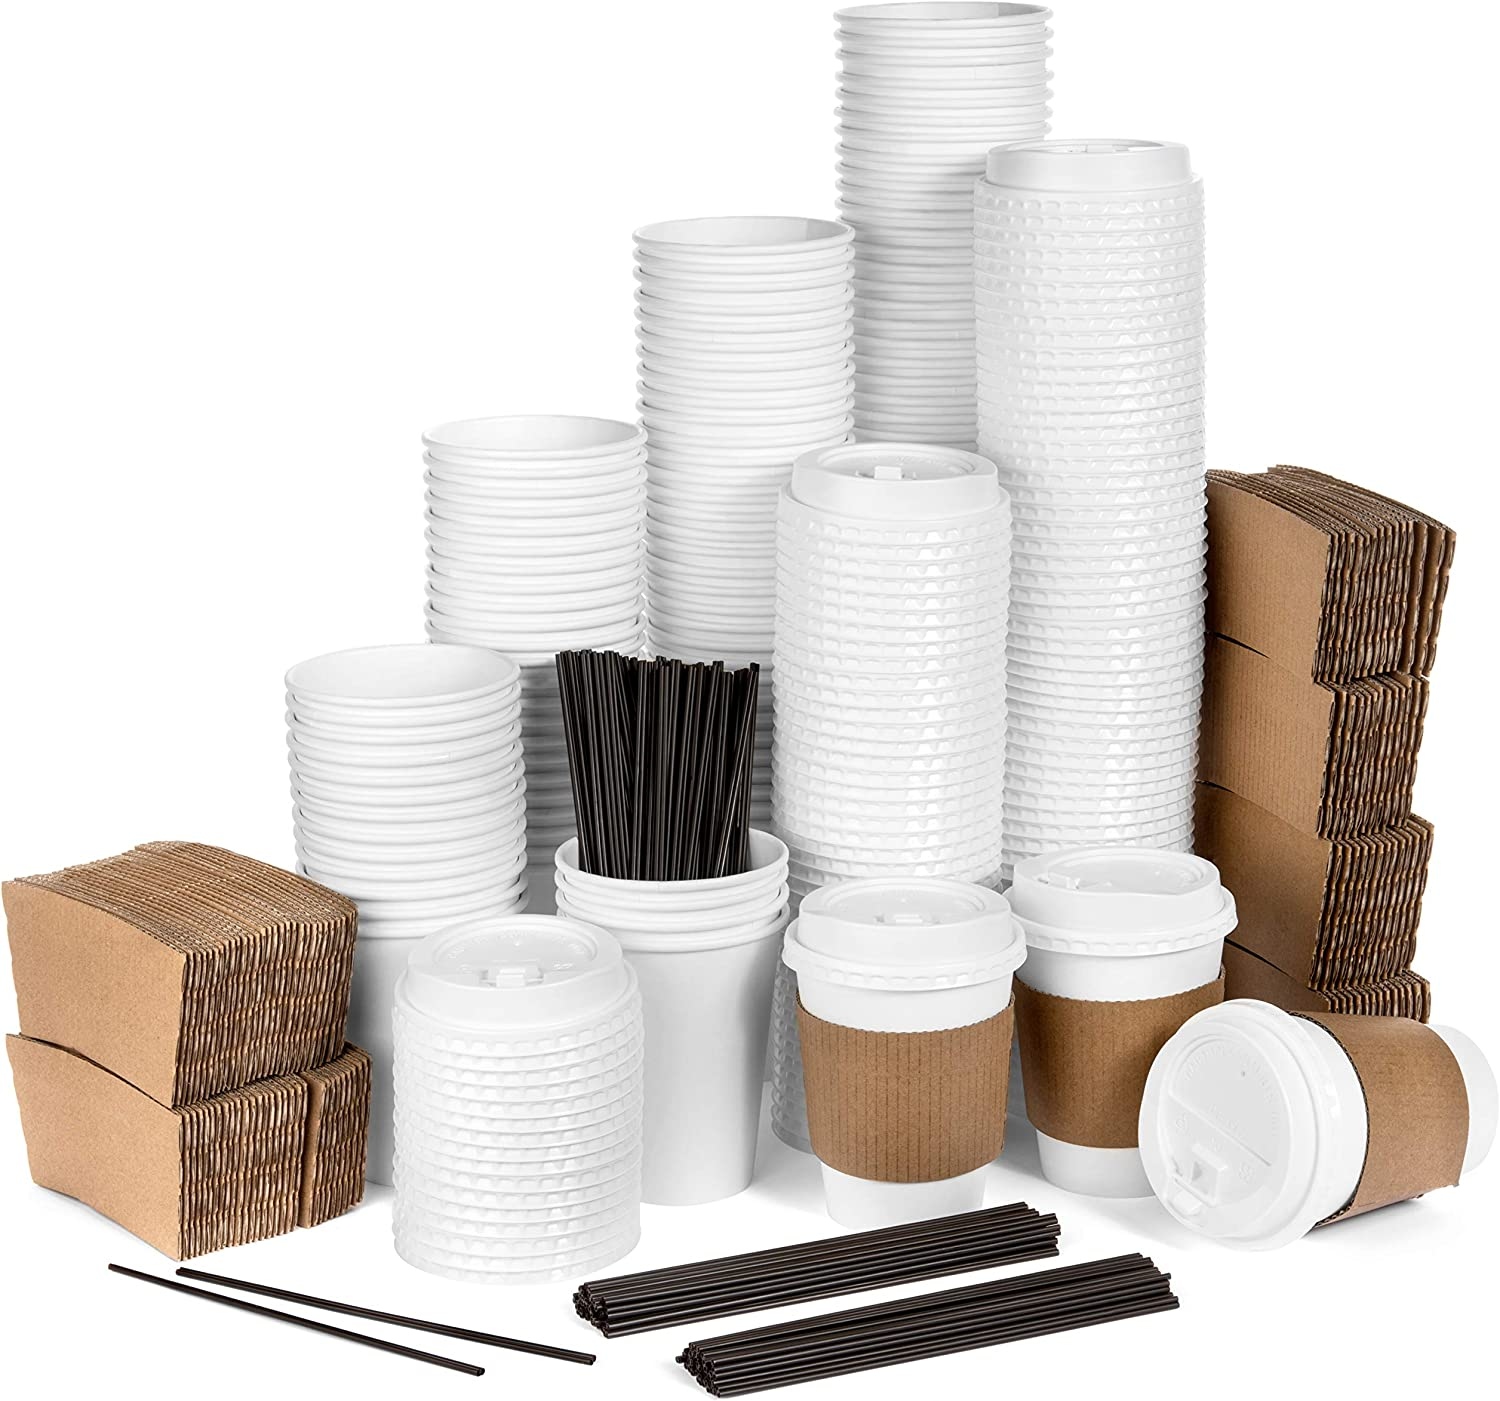 Average Joe Disposable Coffee Cups with Lids - 120 Pack